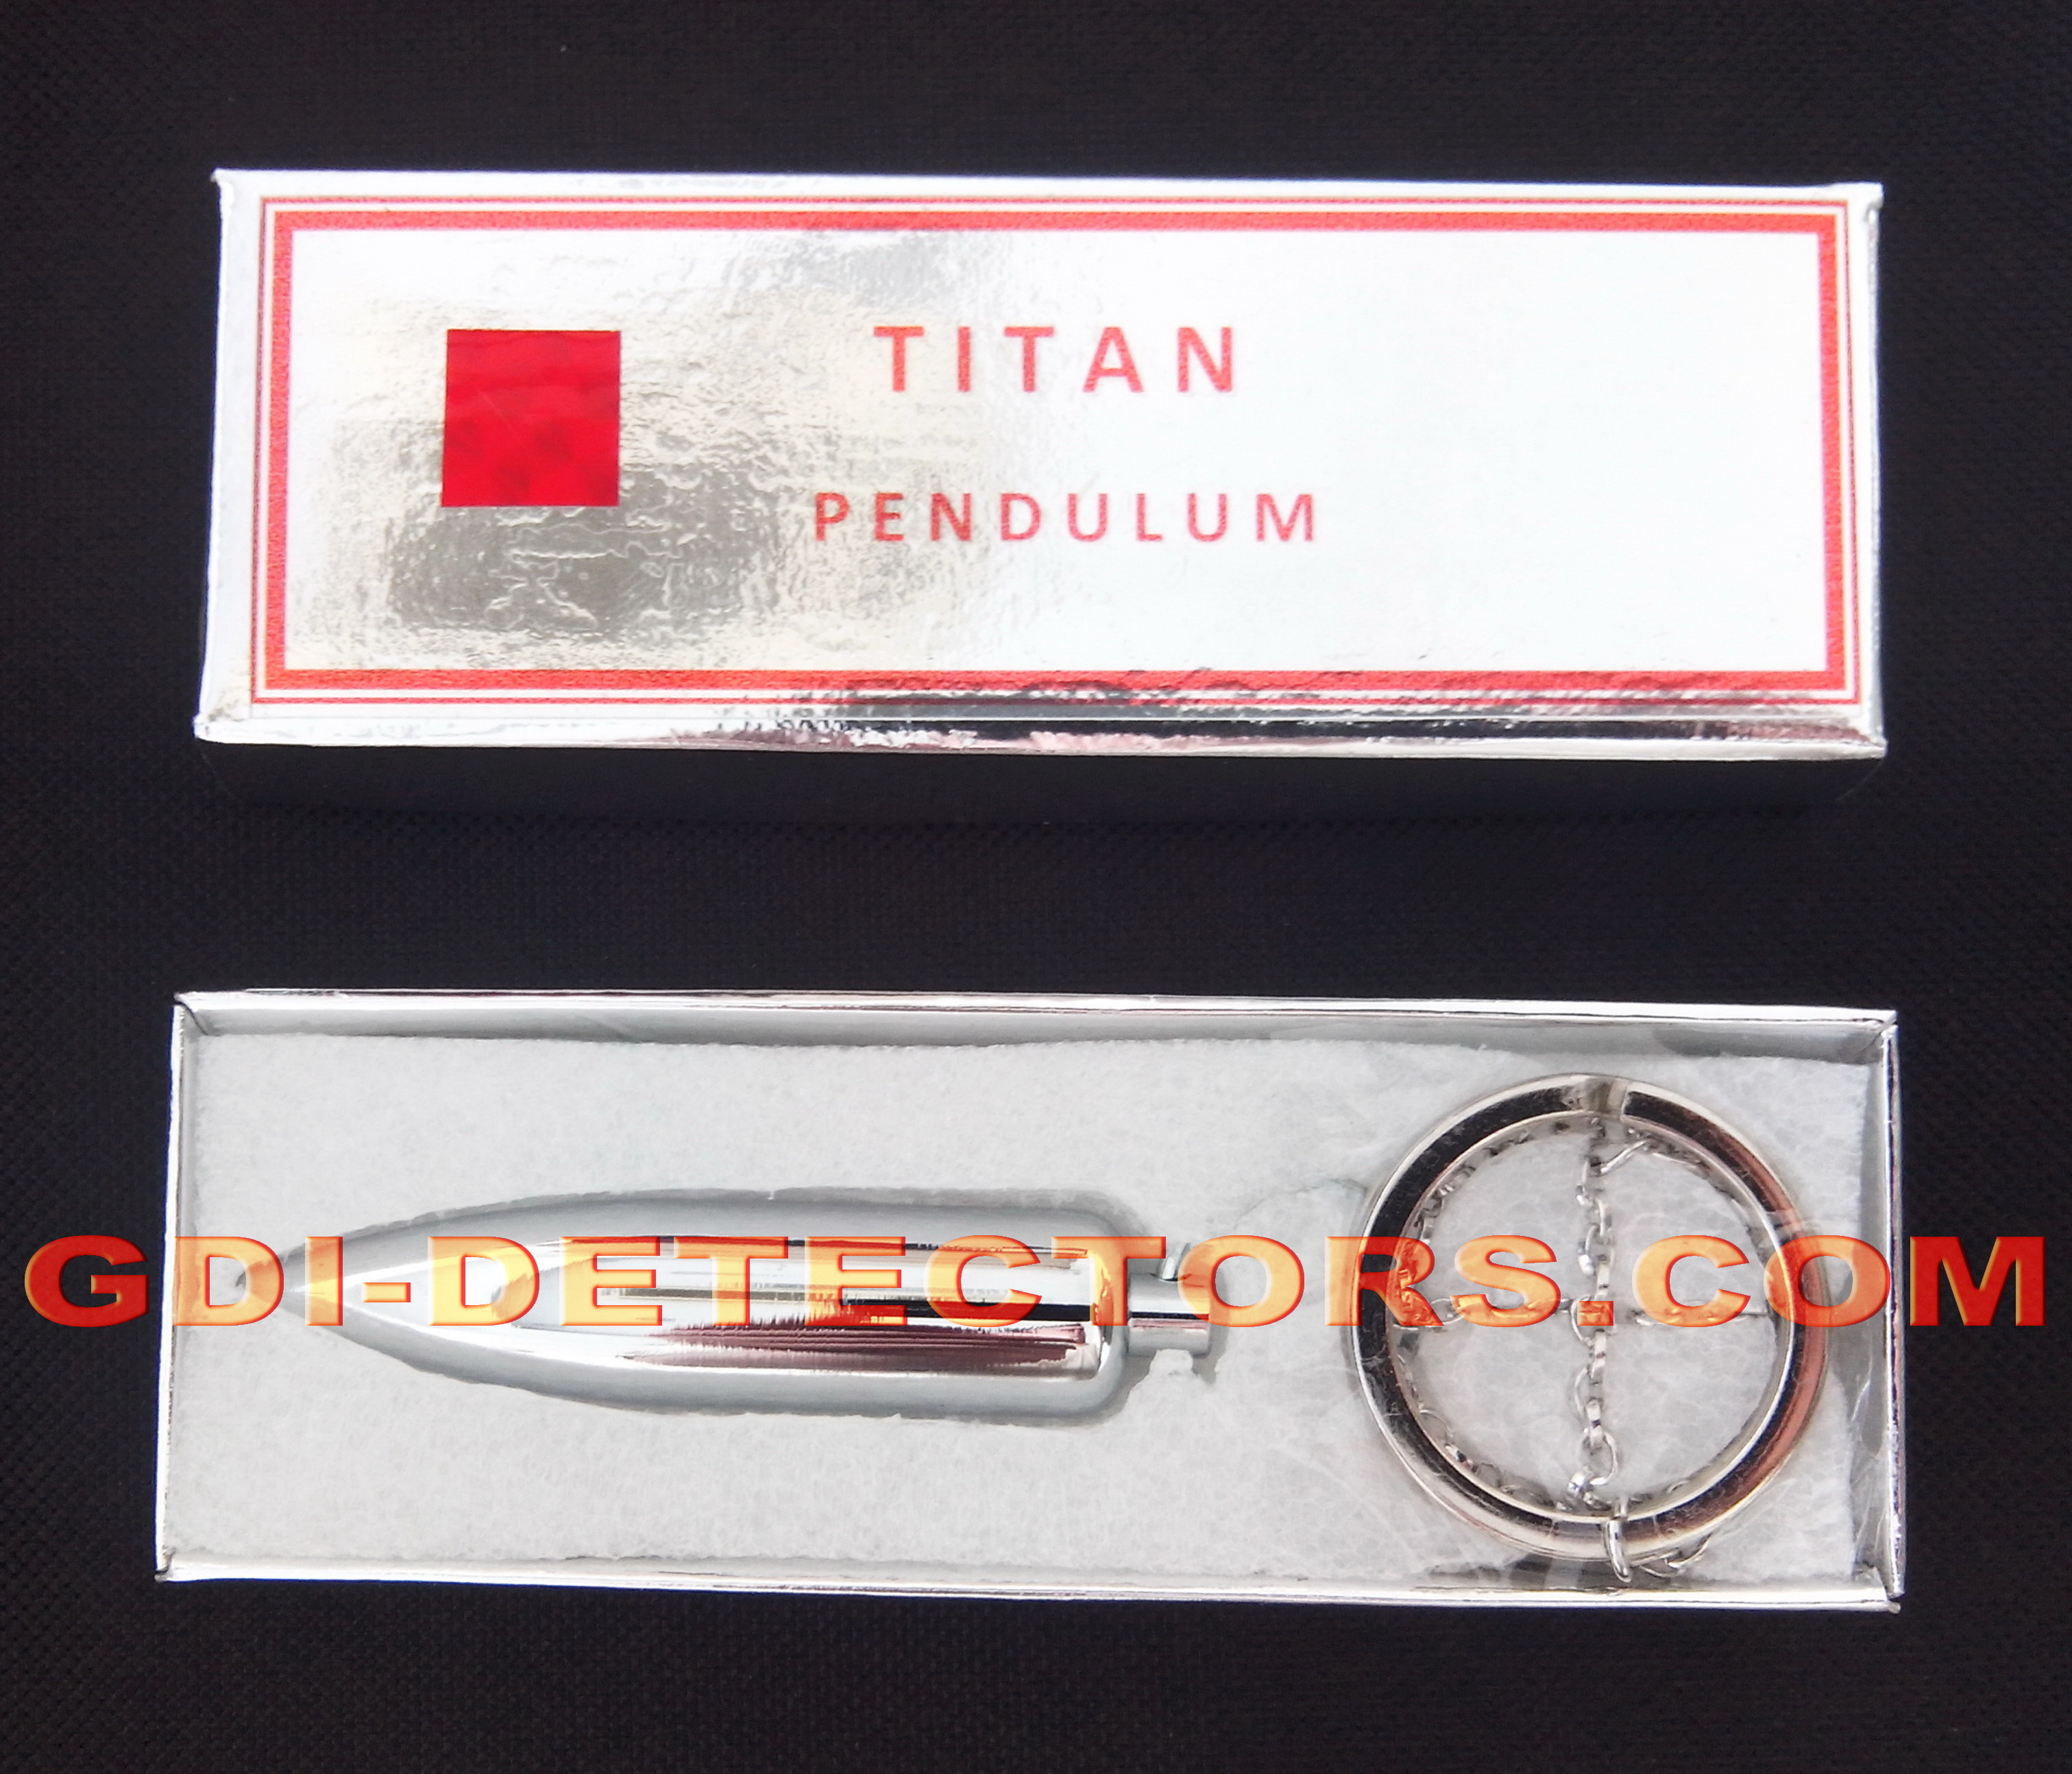 GDI detectors TITAN gold and water dowsing pendulum